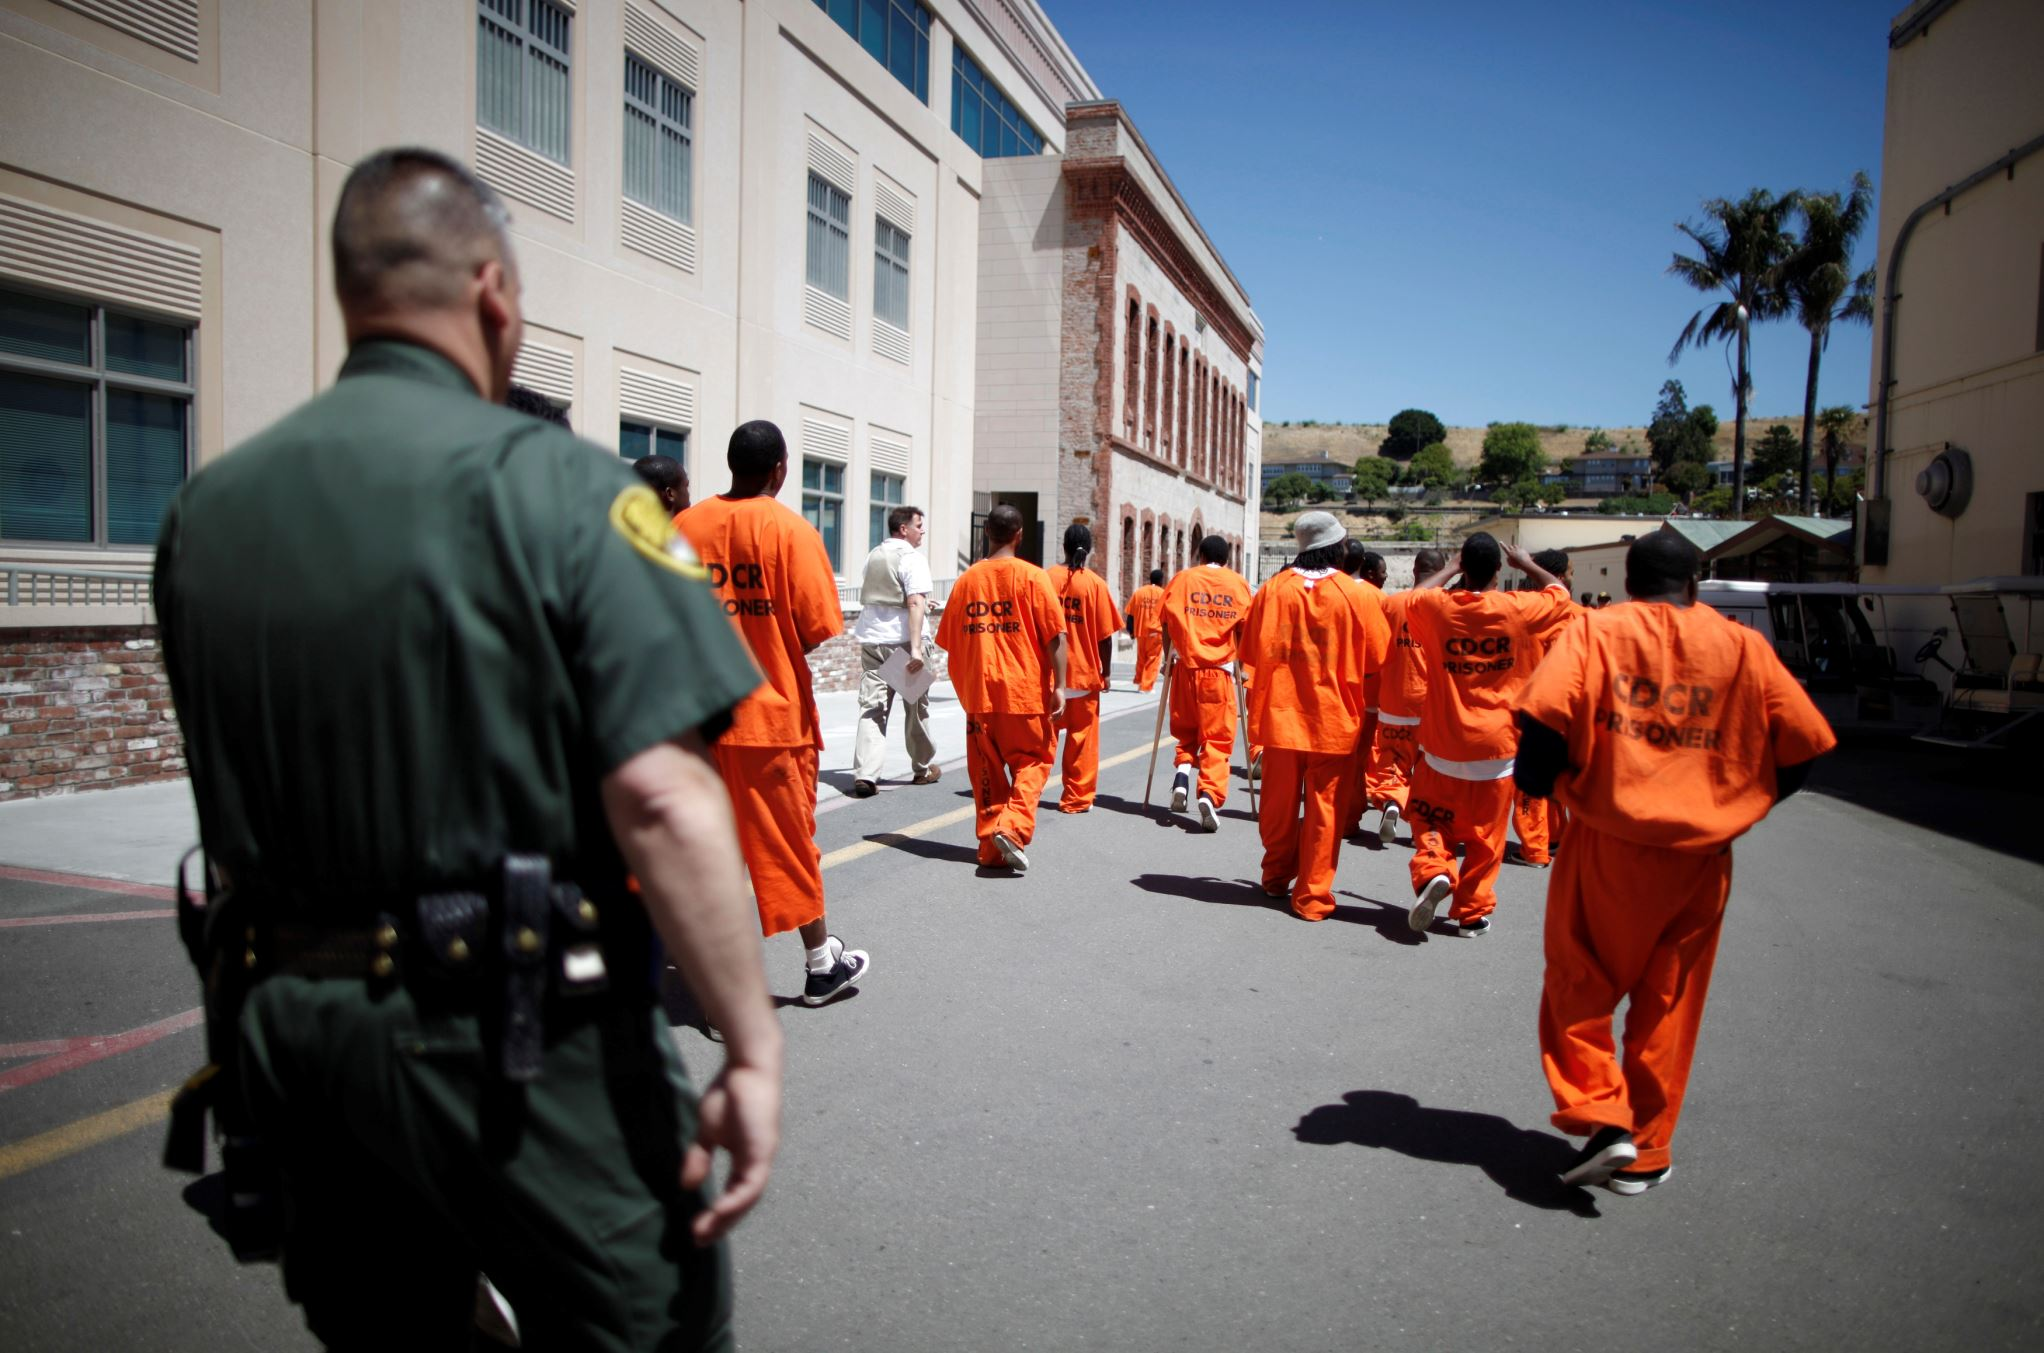 Inmates are escorted by a guard through San Quentin state prison in San Quentin, Calif.